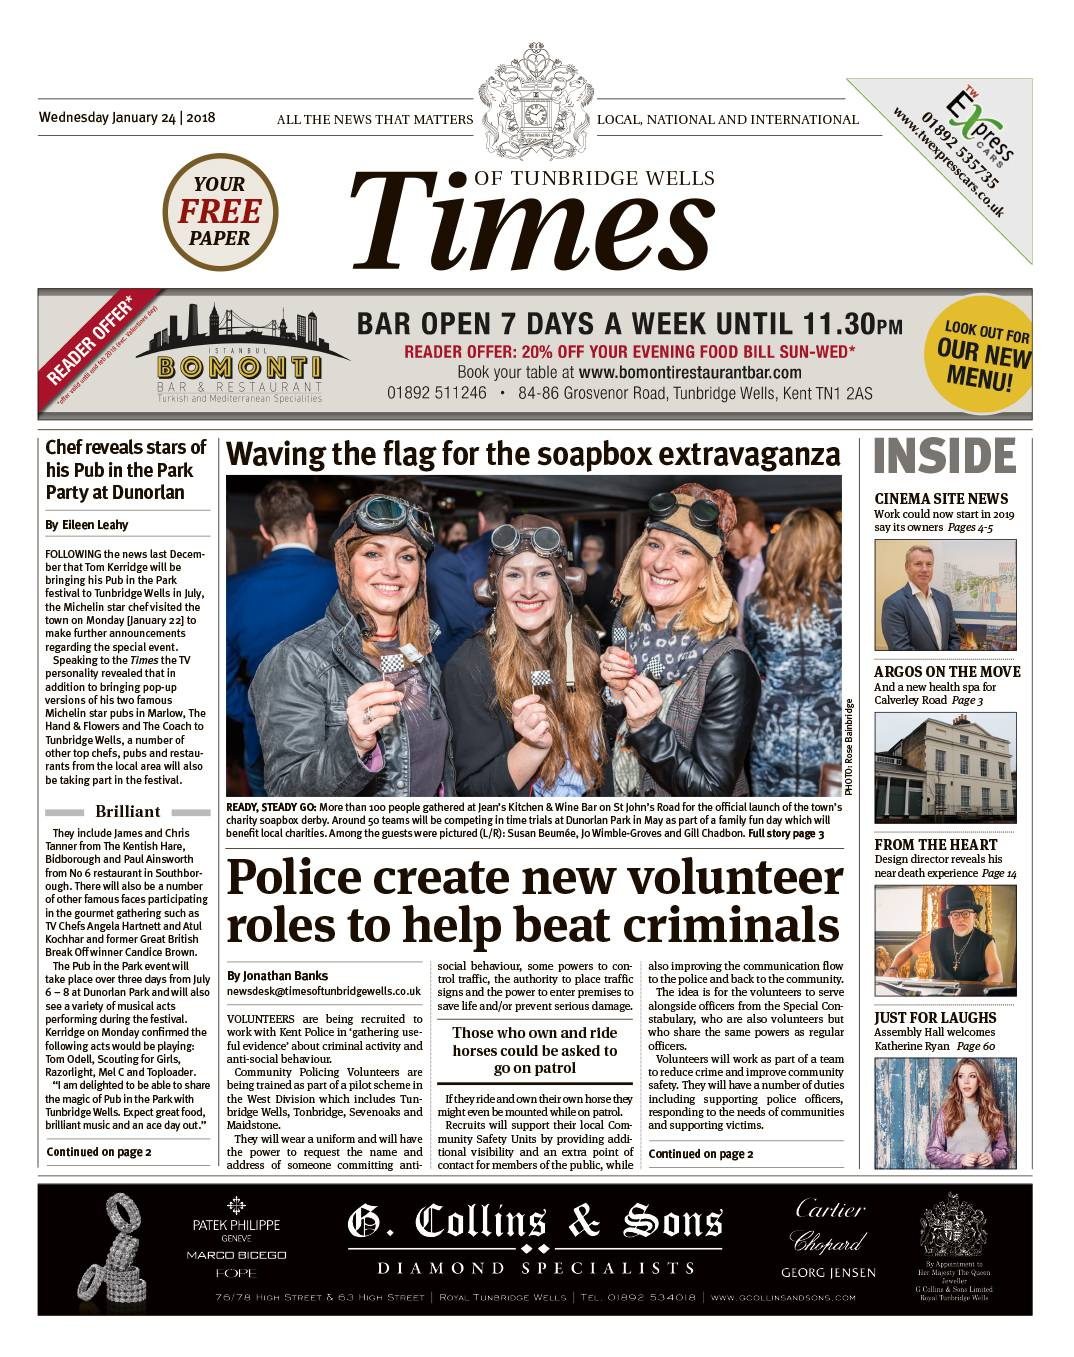 Read the Times of Tunbridge Wells 24th January 2018